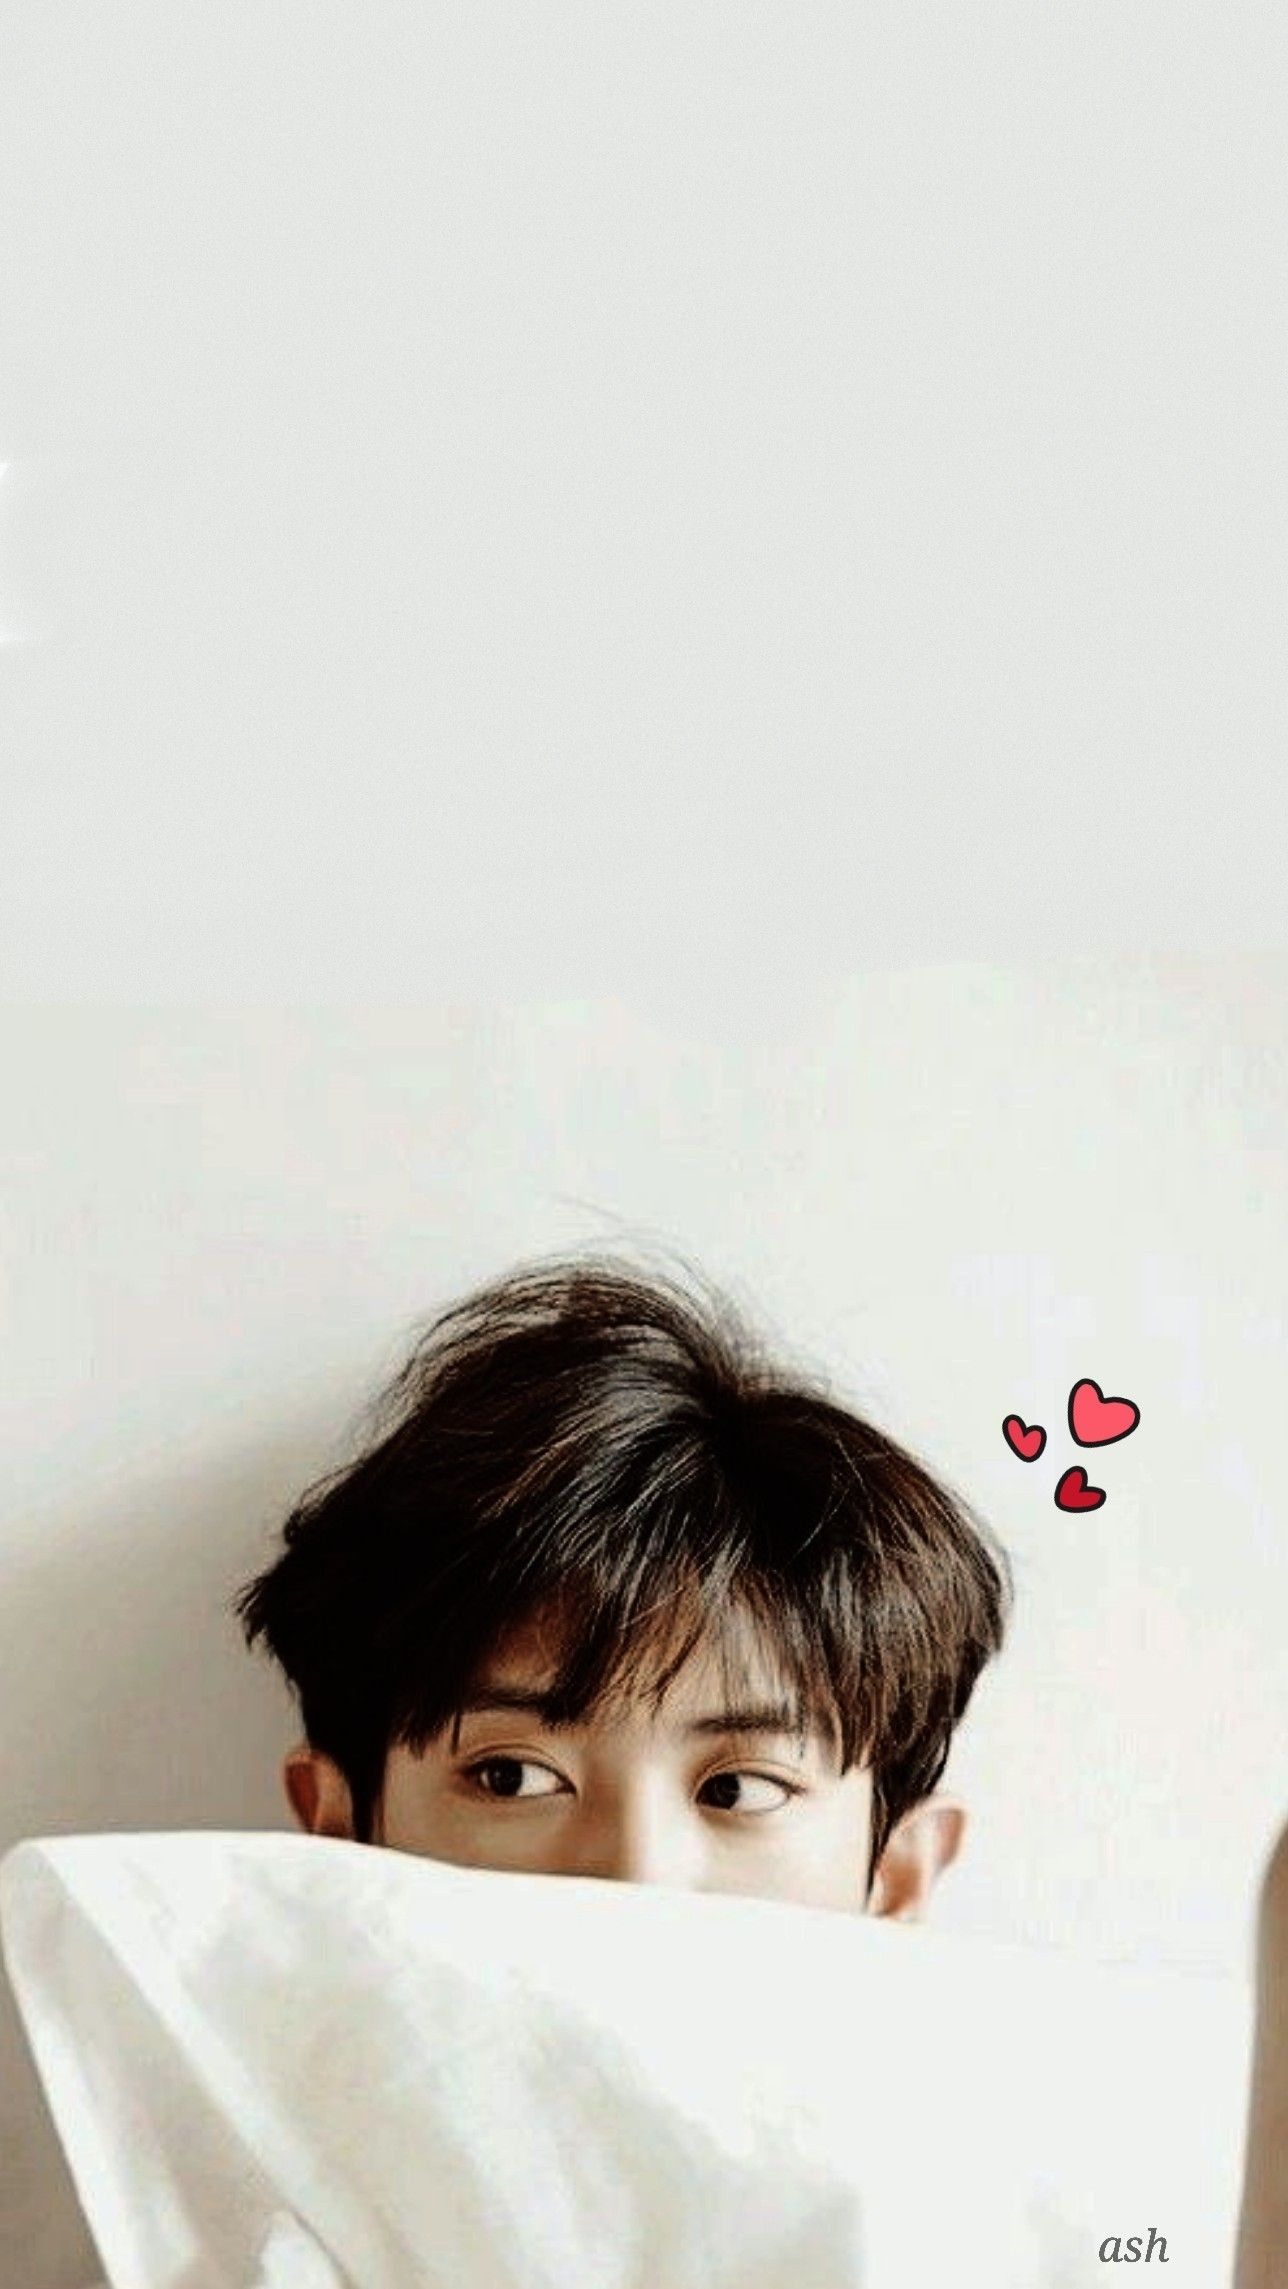 1288x2289 Chanyeol Wallpaper Park Chanyeol Pinterest Exo Exo